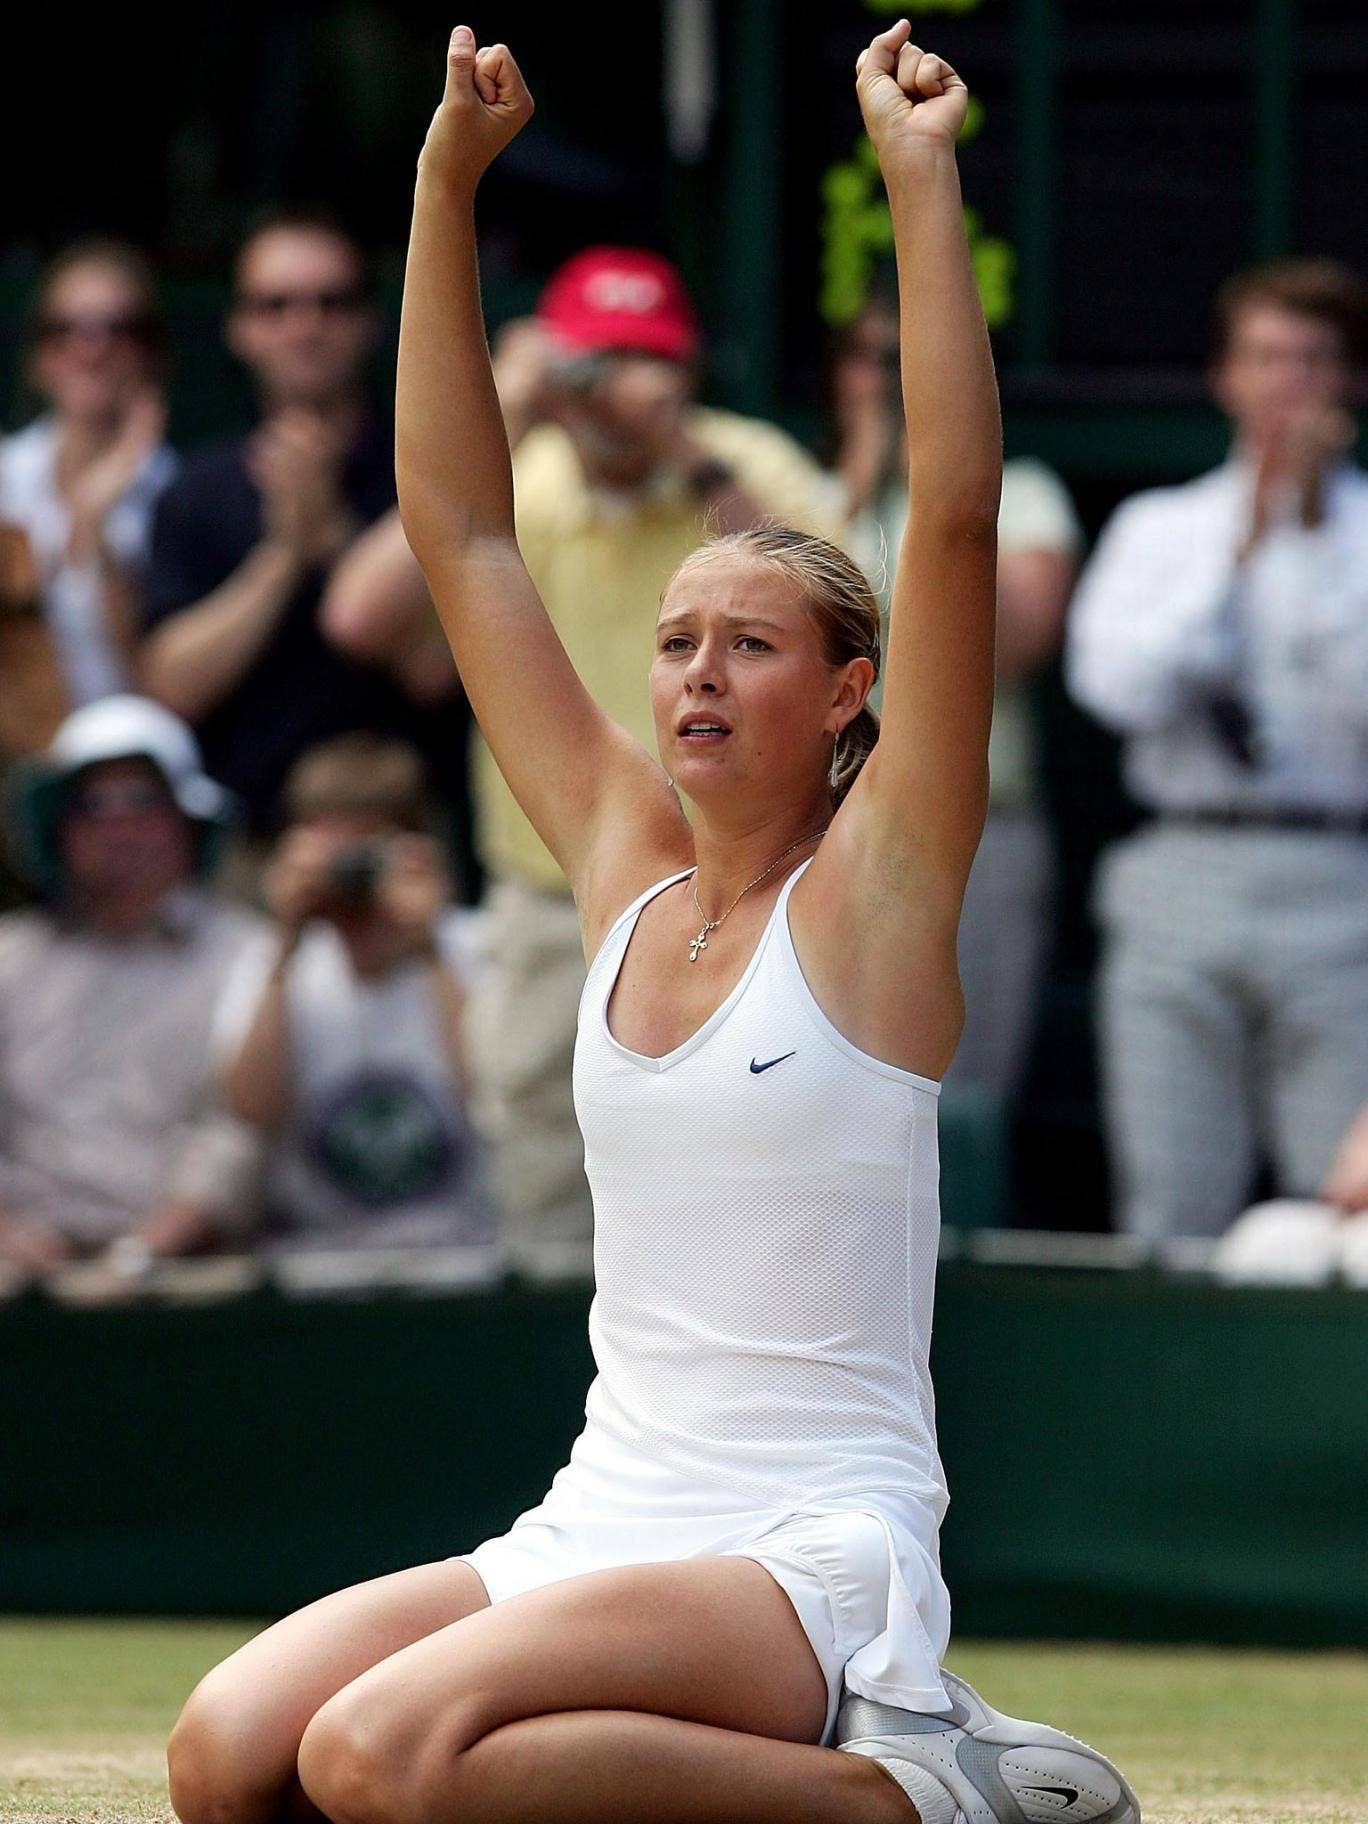 Maria Sharapova sinks to her knees after winning the 2004 Wimbledon final against Serena Williams